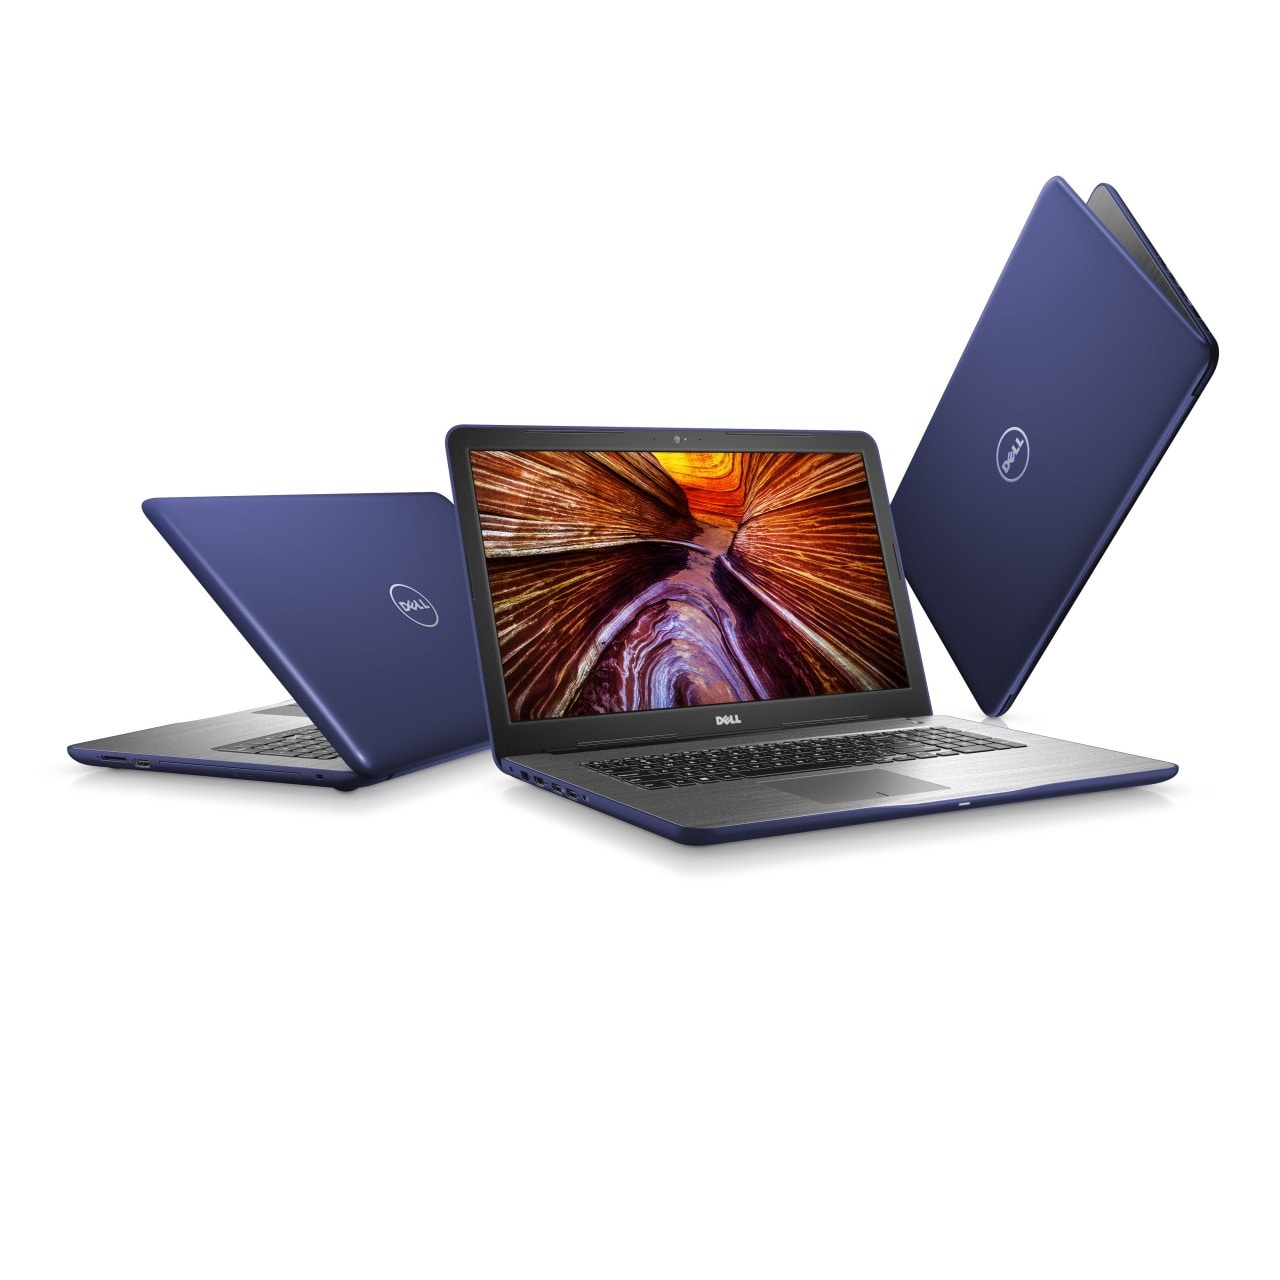 Inspiron 17 5000 Series Non-Touch Notebooks